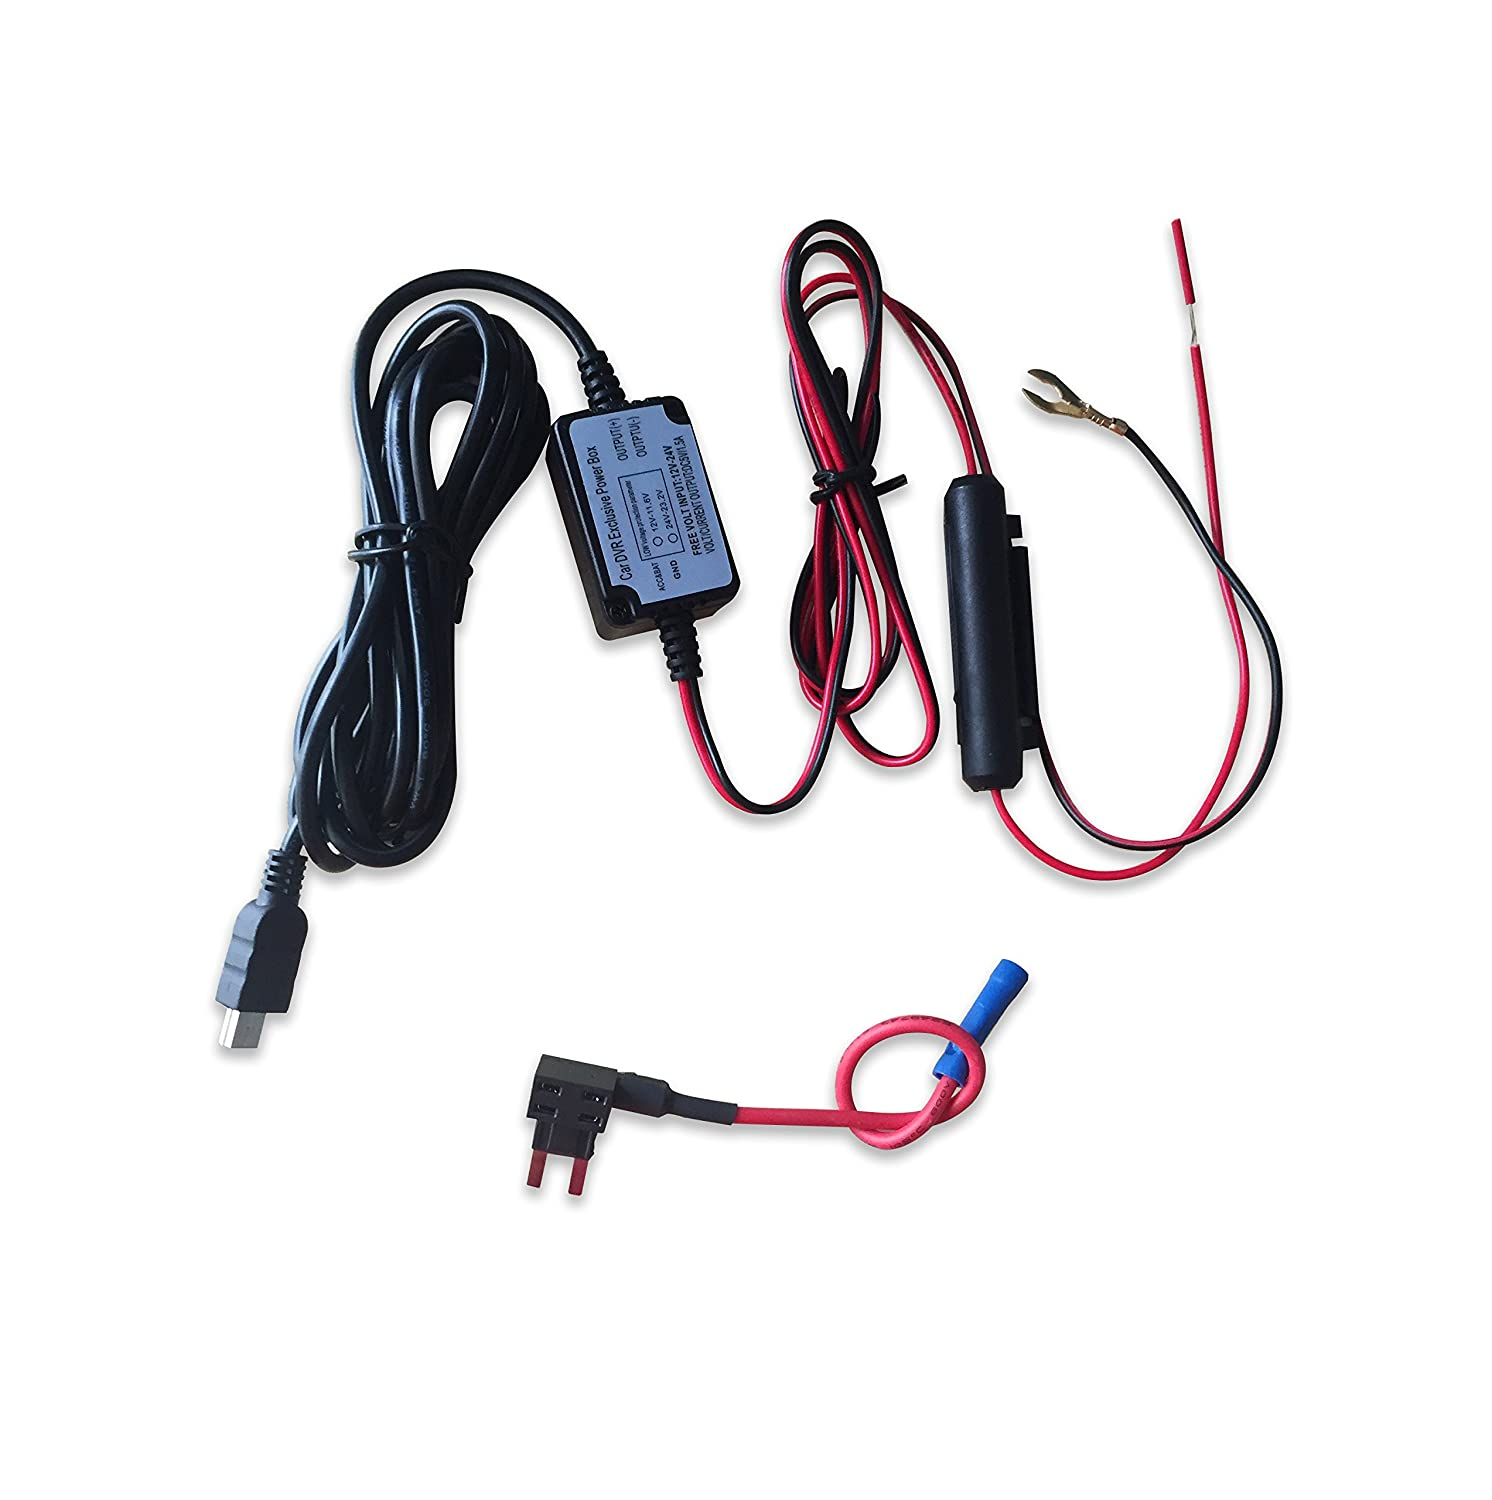 81vasrBJwWL._SL1500_ amazon com wocst car camera hard wire kit mini usb dash cam 10 House Fuse Box Diagram at alyssarenee.co